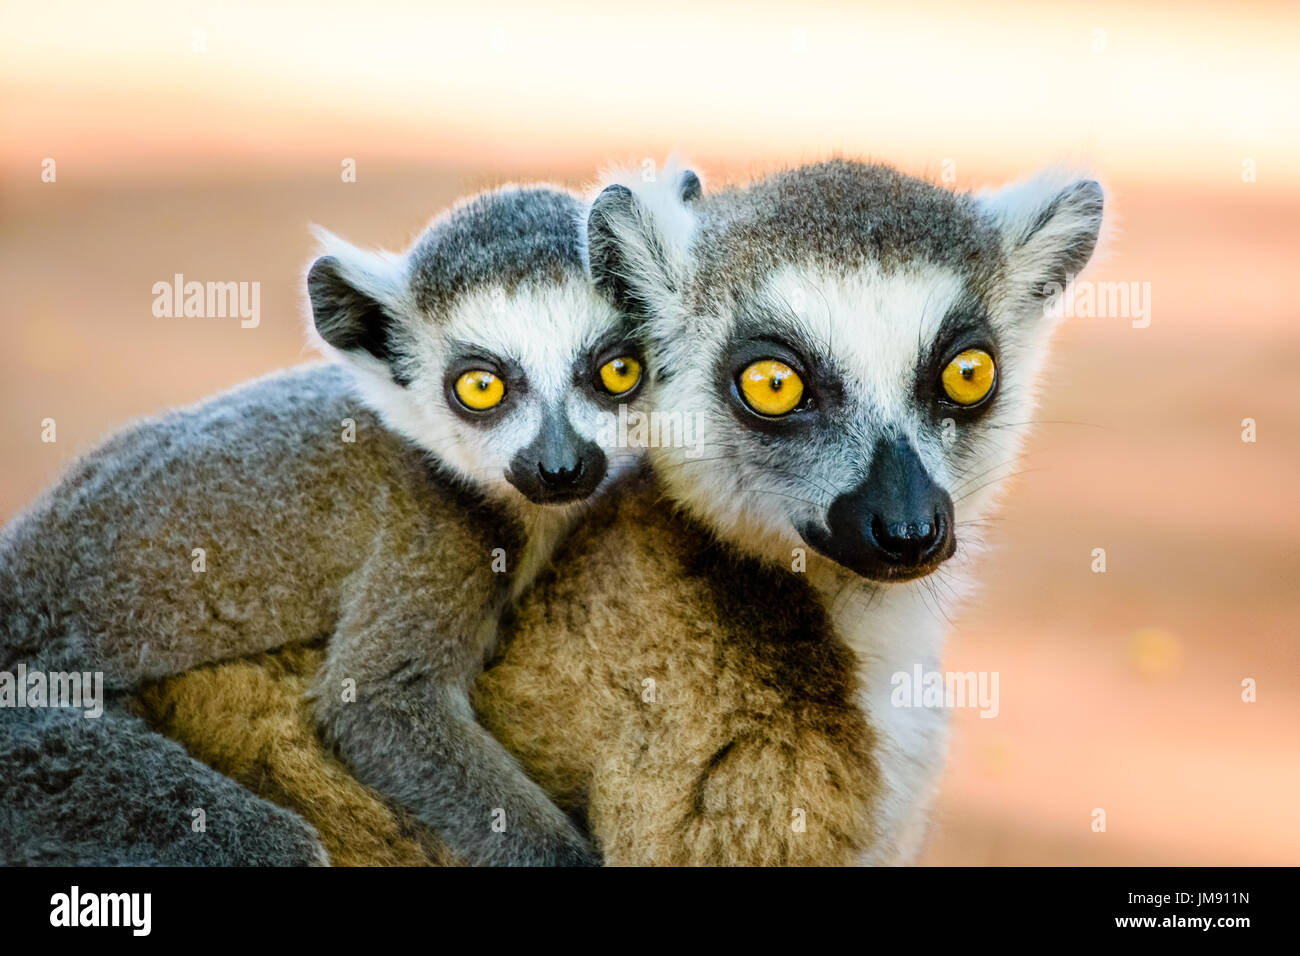 Cute ring tailed lemur carrying baby on back looking into camera with beautiful eyes - Stock Image